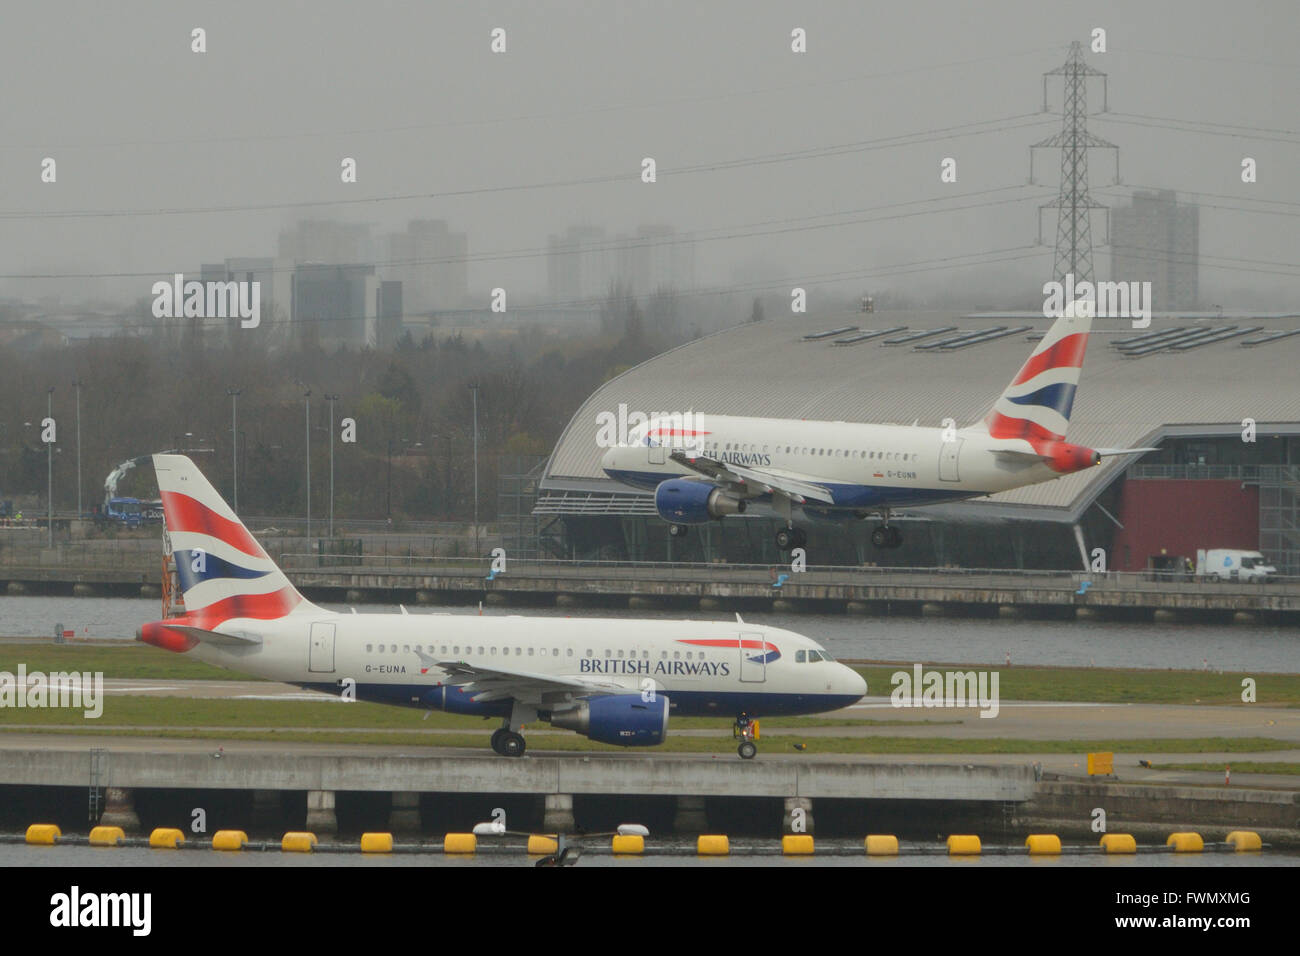 The two British Airways A318 'Baby Bus' jets at London City Airport - G-EUNA waiting to depart as G-EUNB - Stock Image